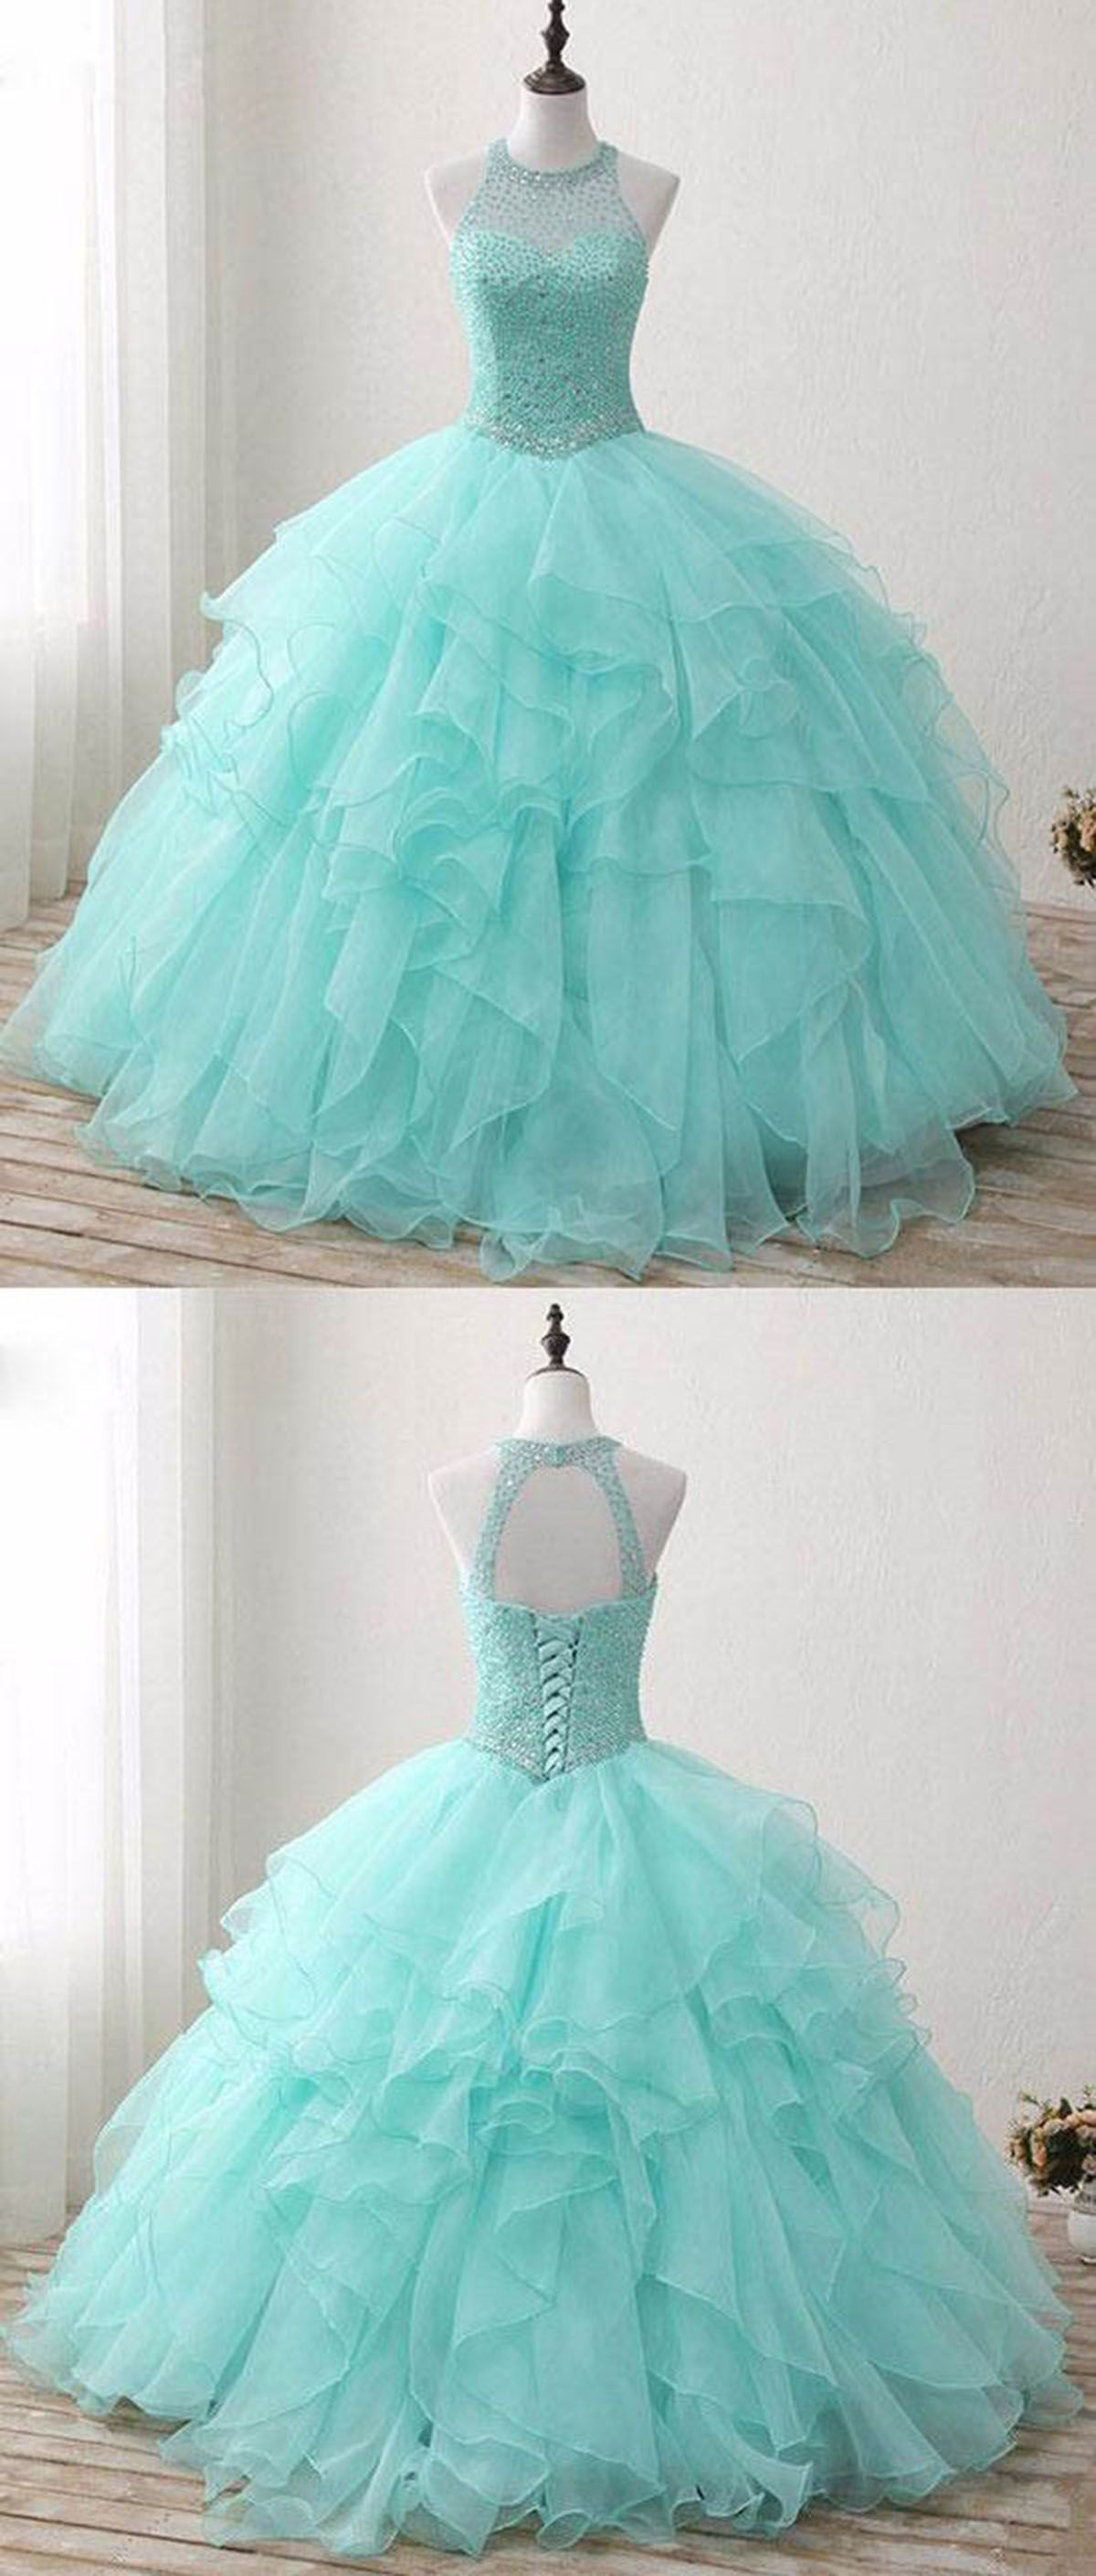 Mint tulle silver beads floor length winter formal prom dress mint